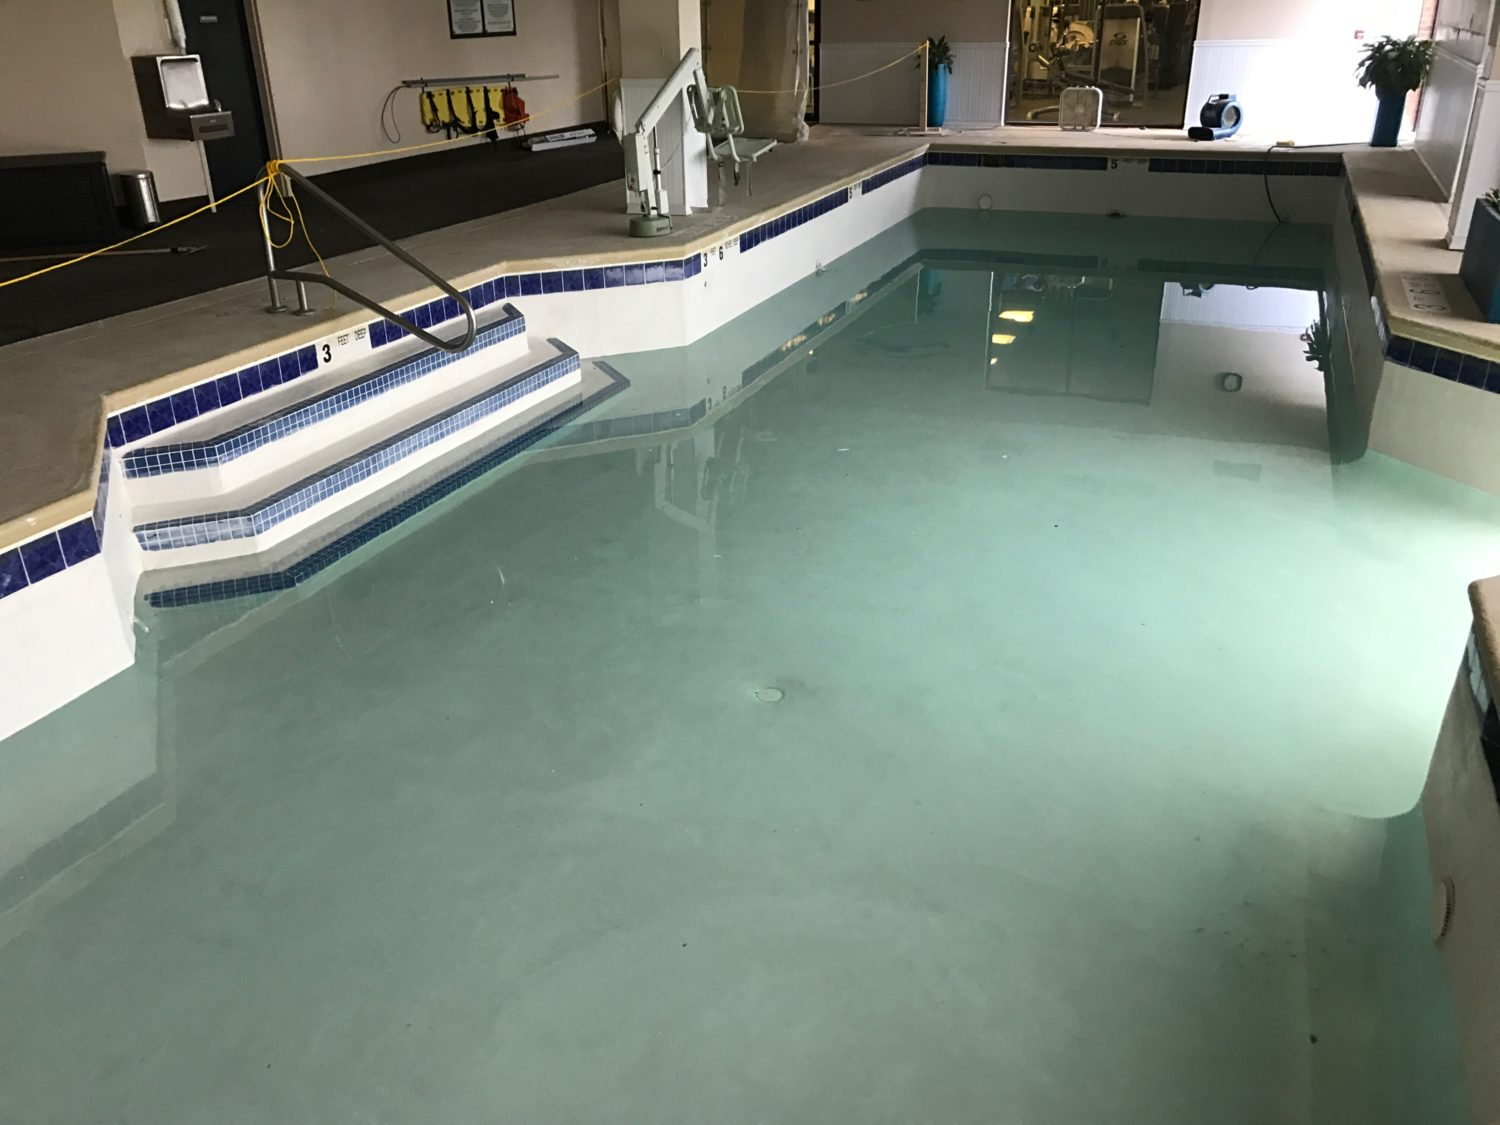 inground concrete pool, woodcliff pool resurfacing, indoor commercial pool